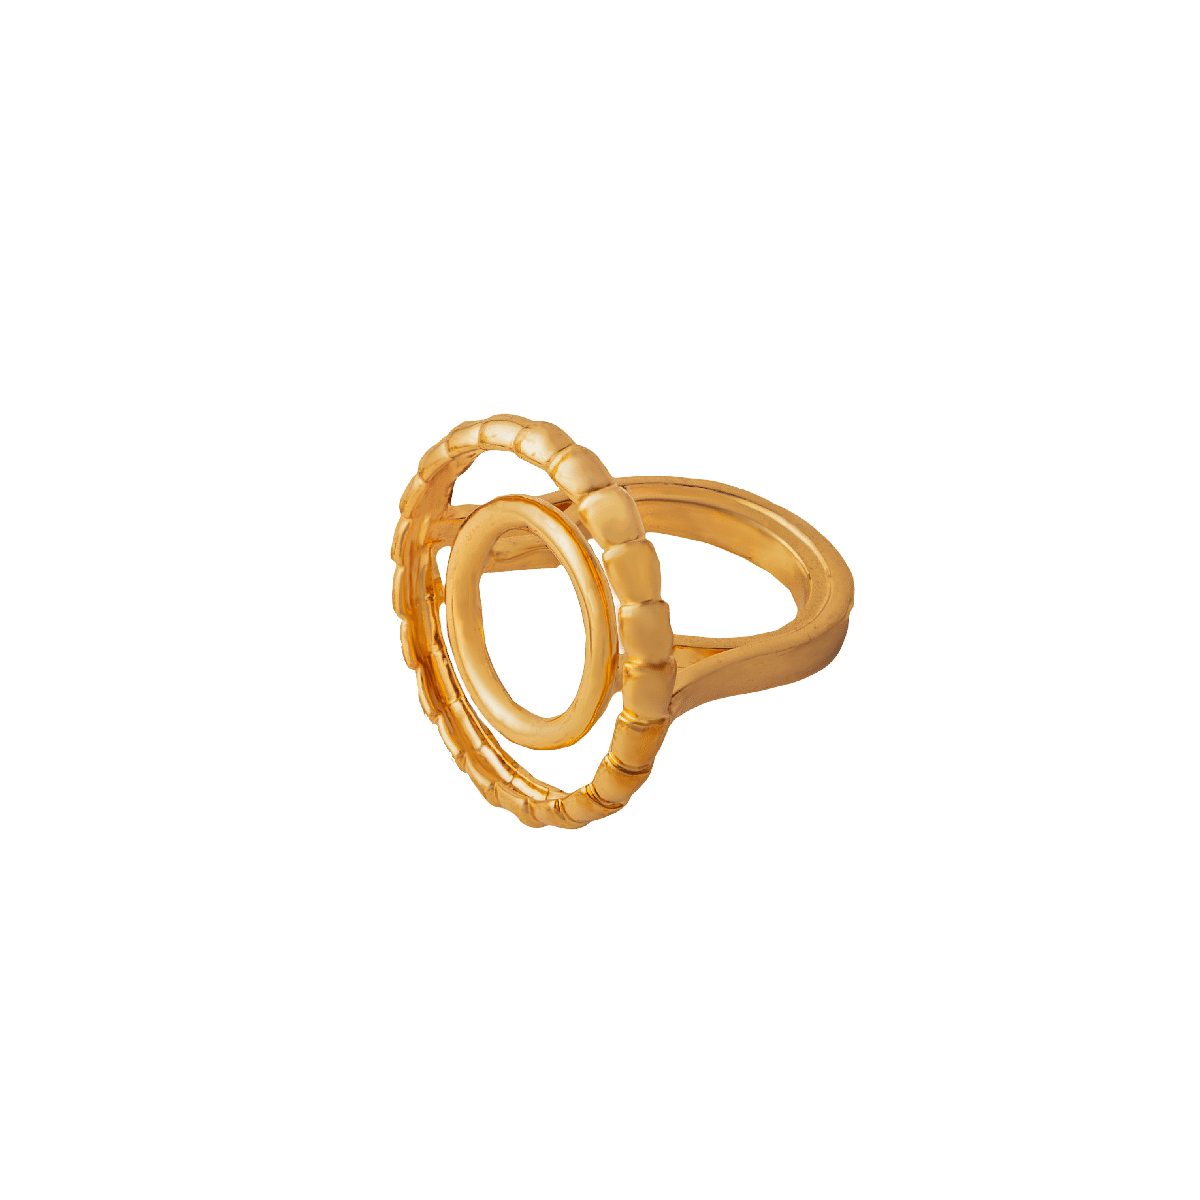 Concentric Circle 22Kt Gold Plated RIng